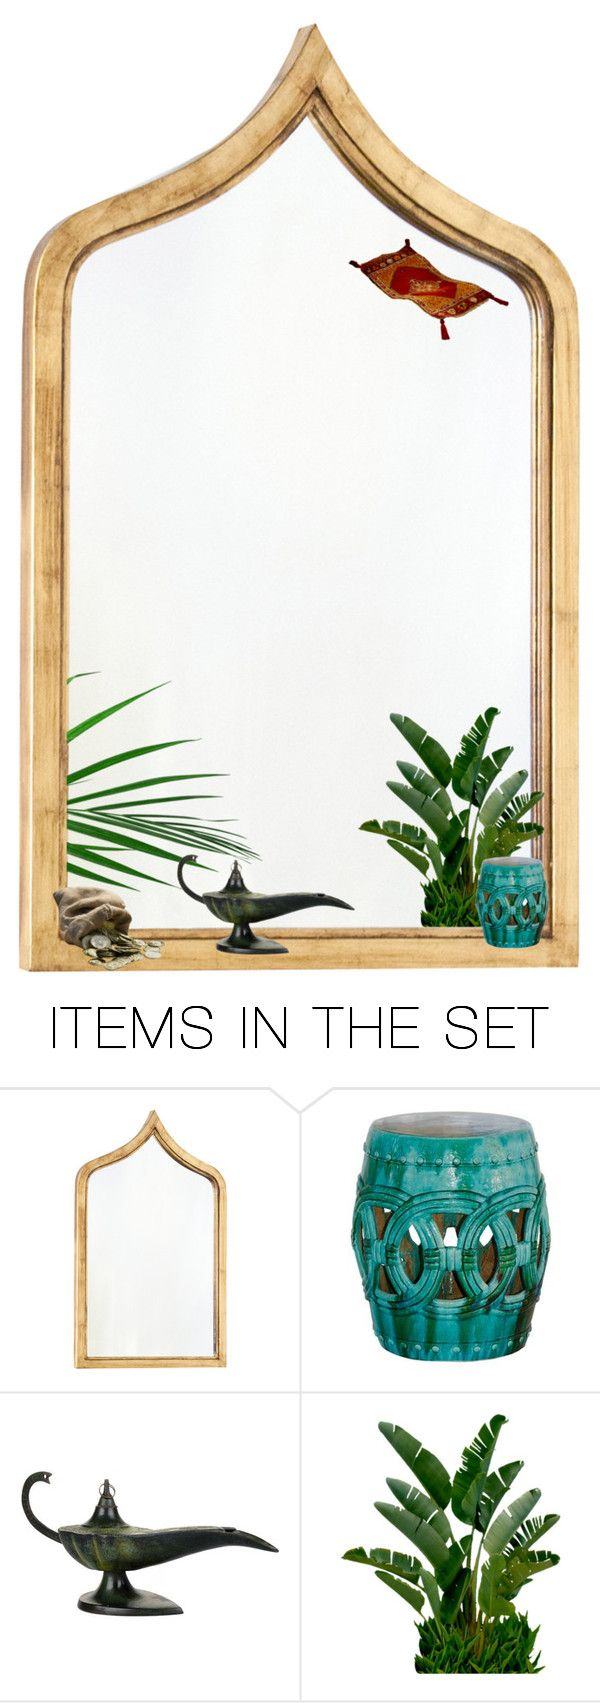 """Formal Template"" by metrostation80s ❤ liked on Polyvore featuring art and ignore"